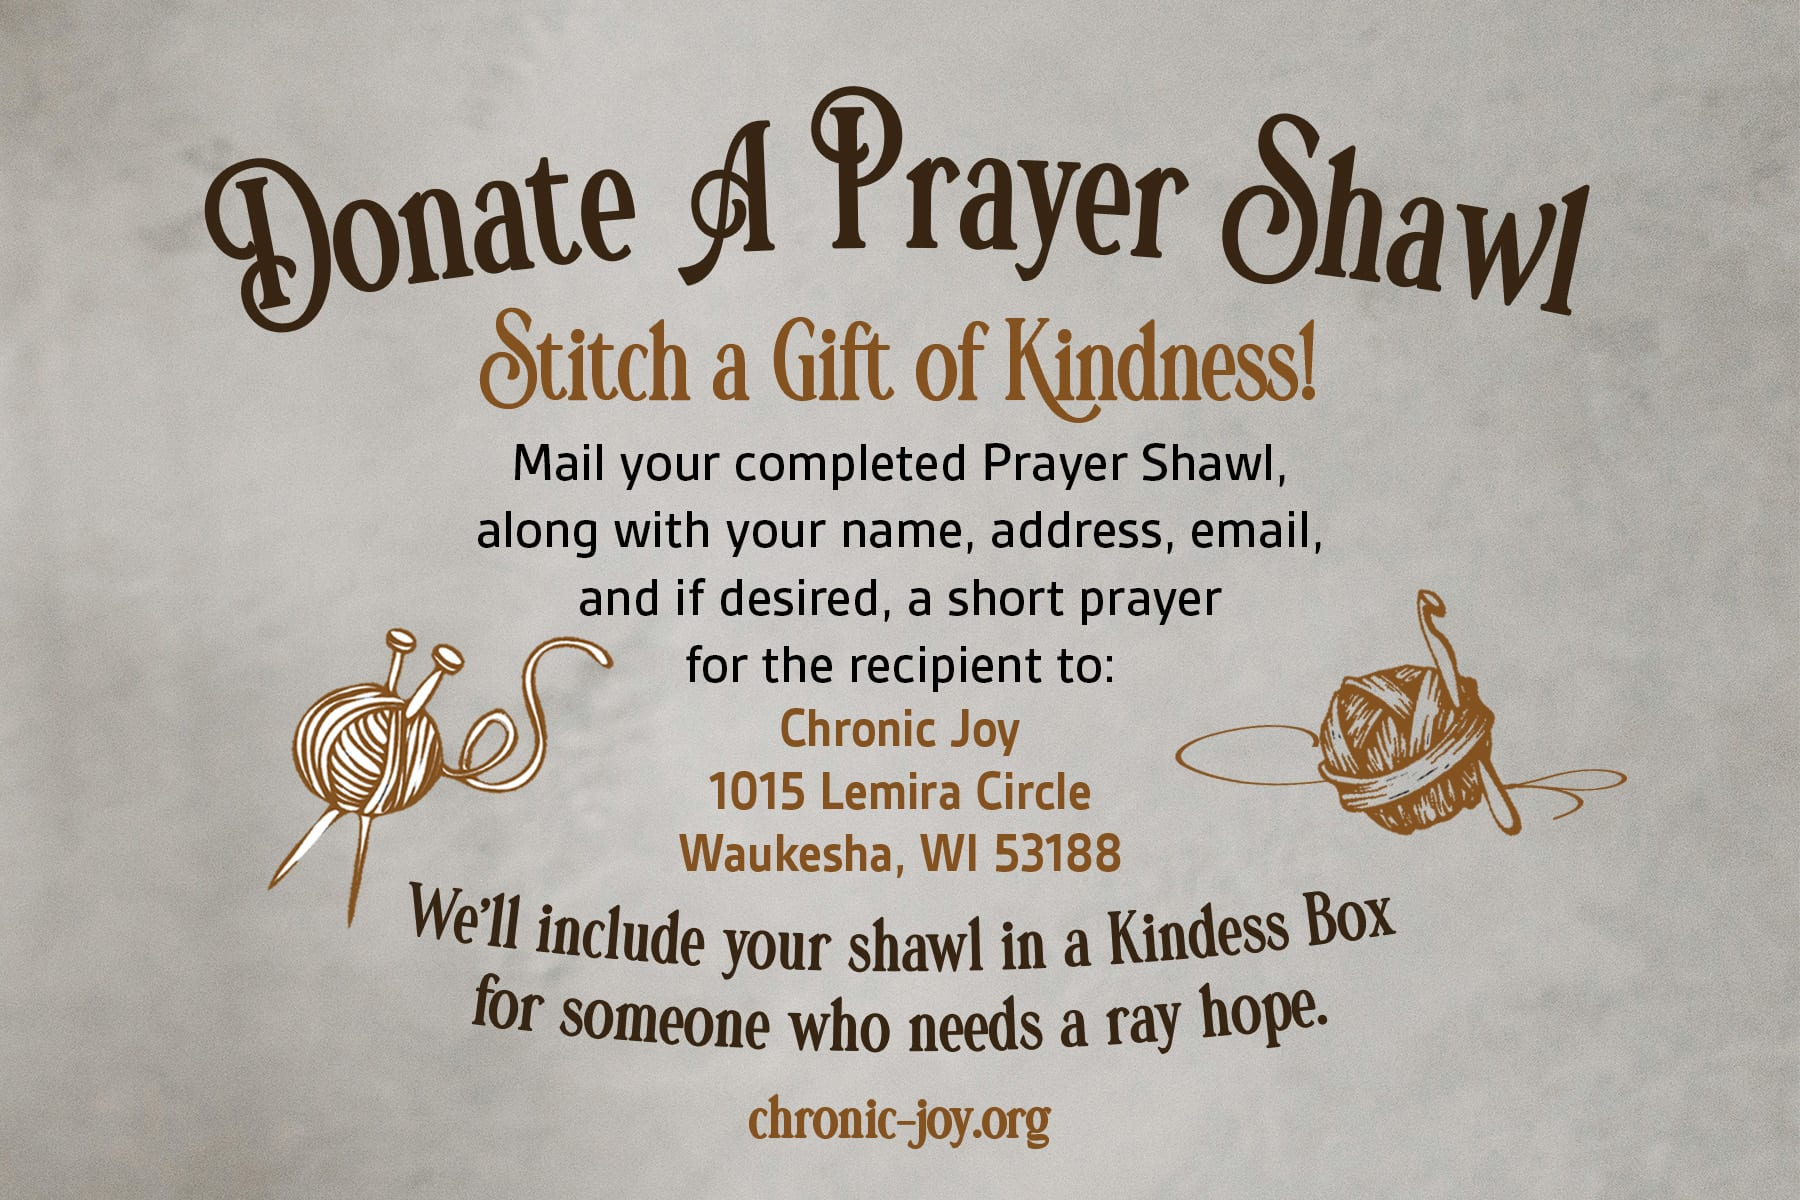 Donate A Prayer Shawl • Stitch a Gift of Kindness Mail your completed Prayer Shawl, along with your name, address, email, and if desired, a short prayer for the recipient to: Chronic Joy, 1015 Lemira Circle, Waukesha, WI 53188. We'll include your shawl in a Kindness Box for someone who needs a ray of hope.